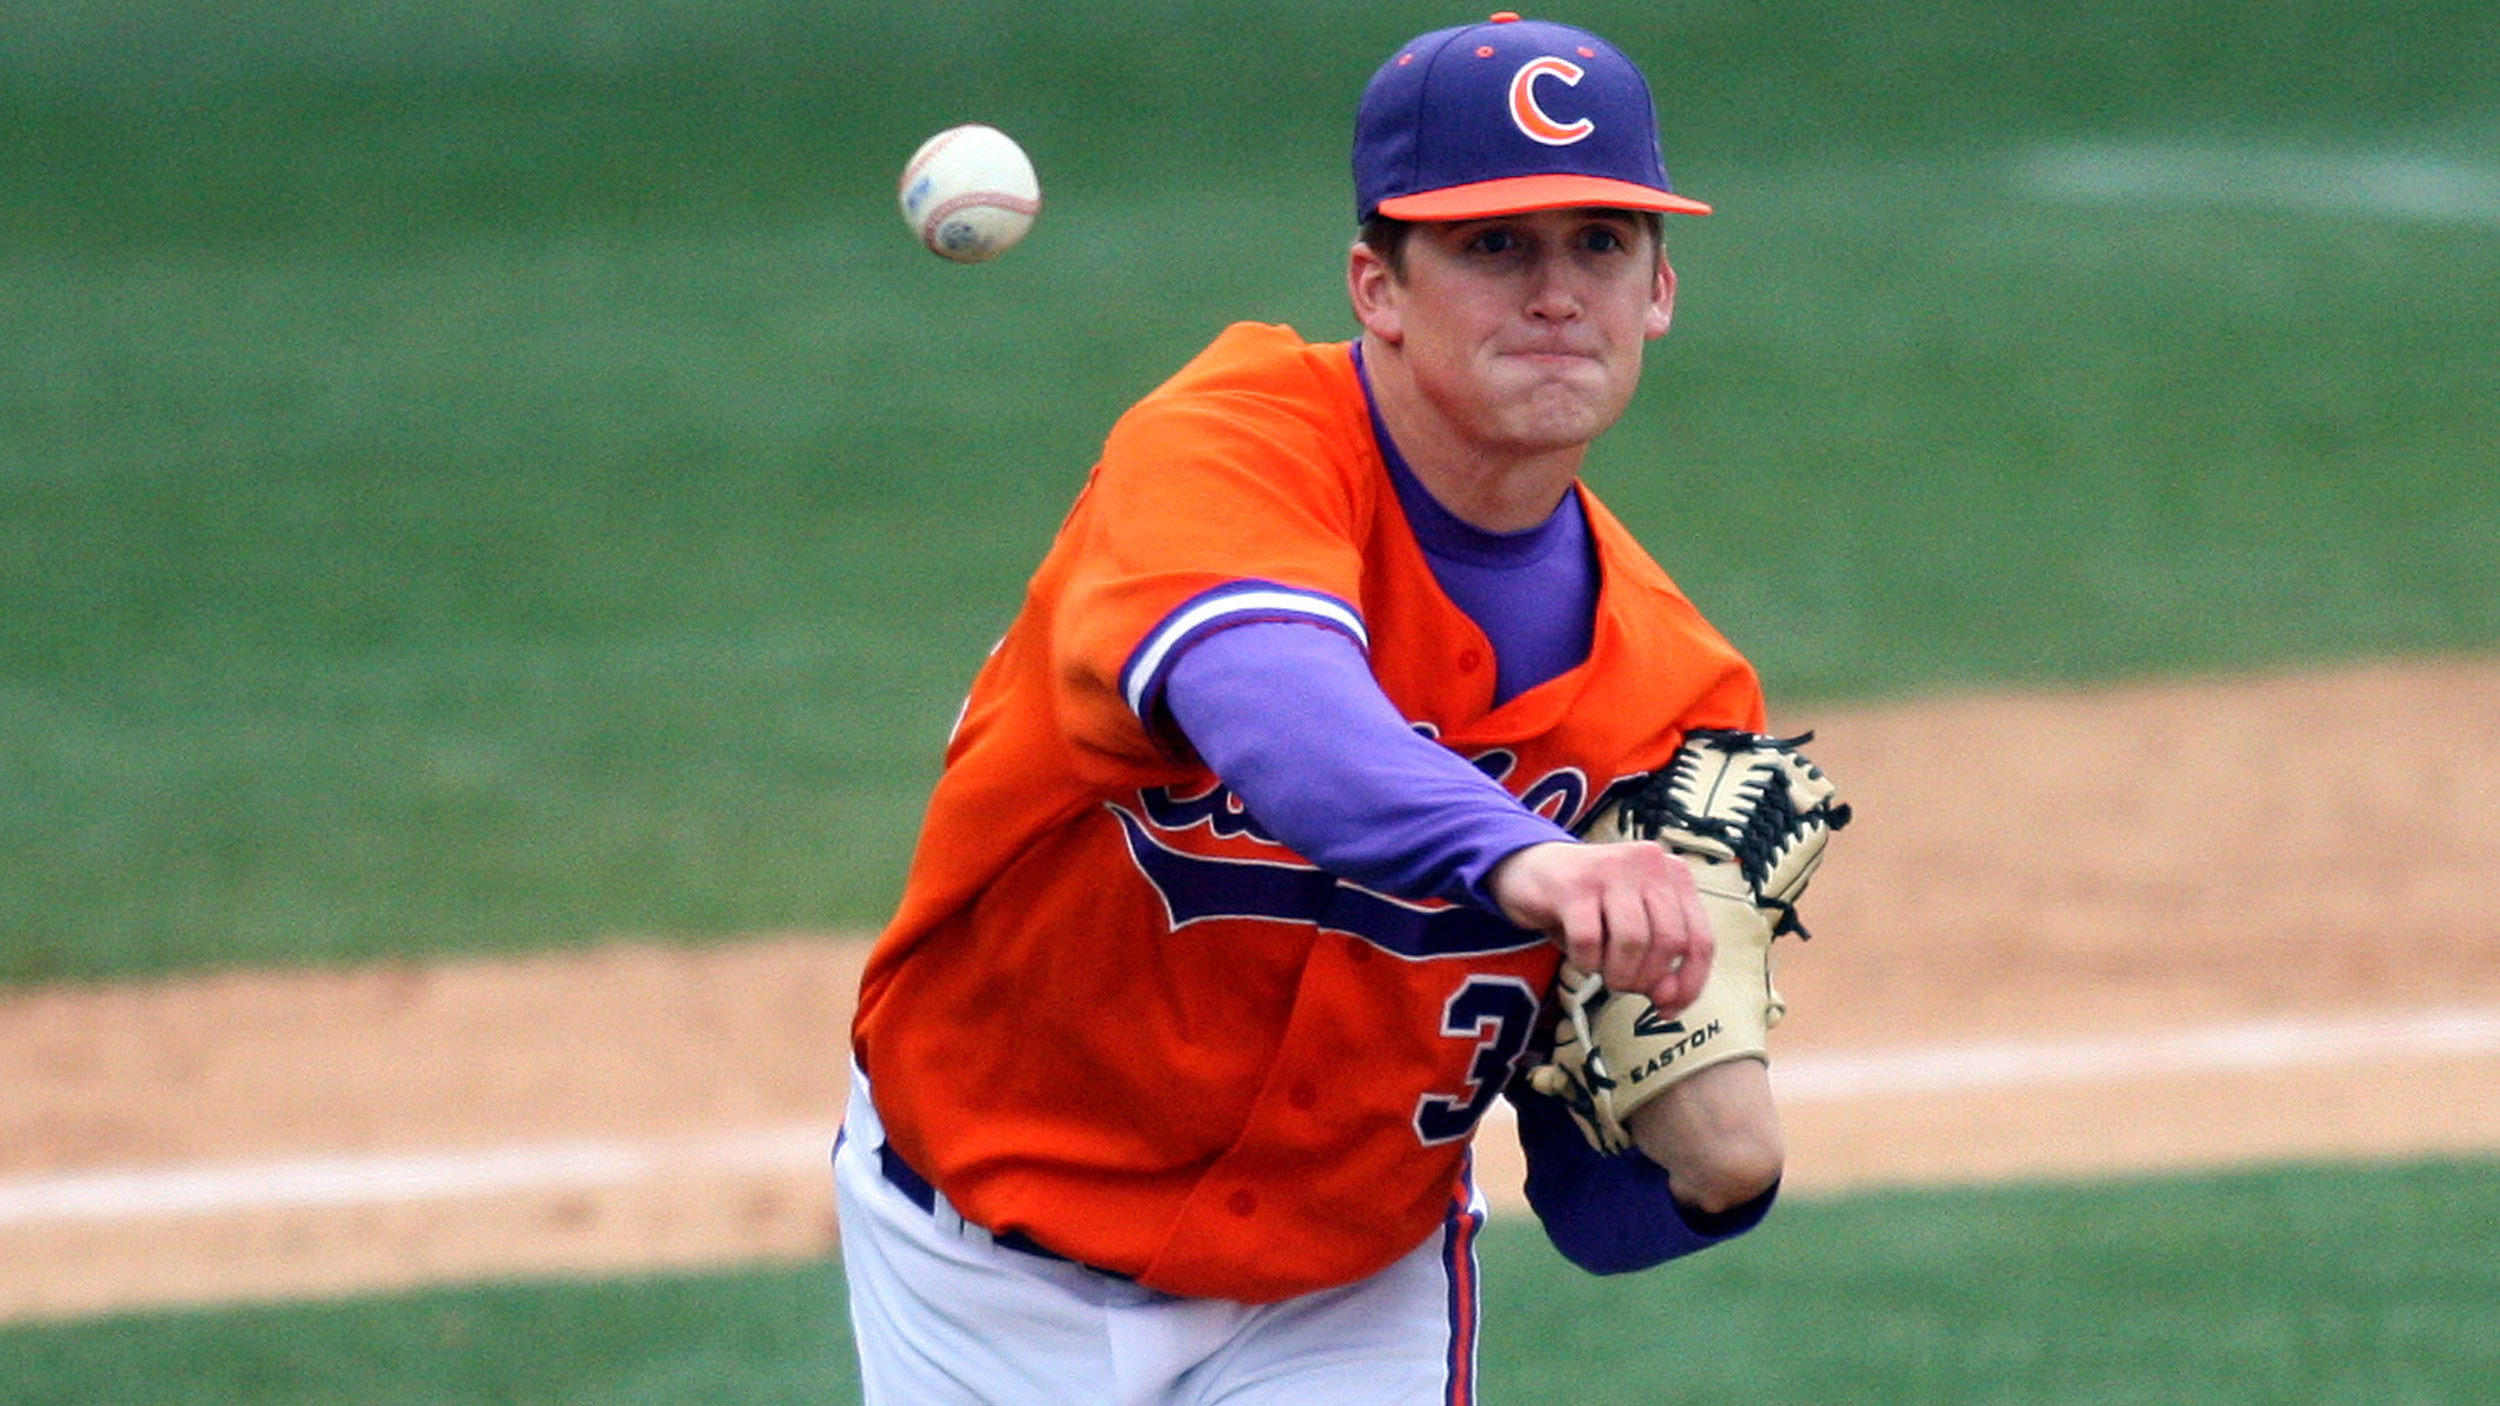 Clemson to Play Host to Wofford Wednesday Afternoon